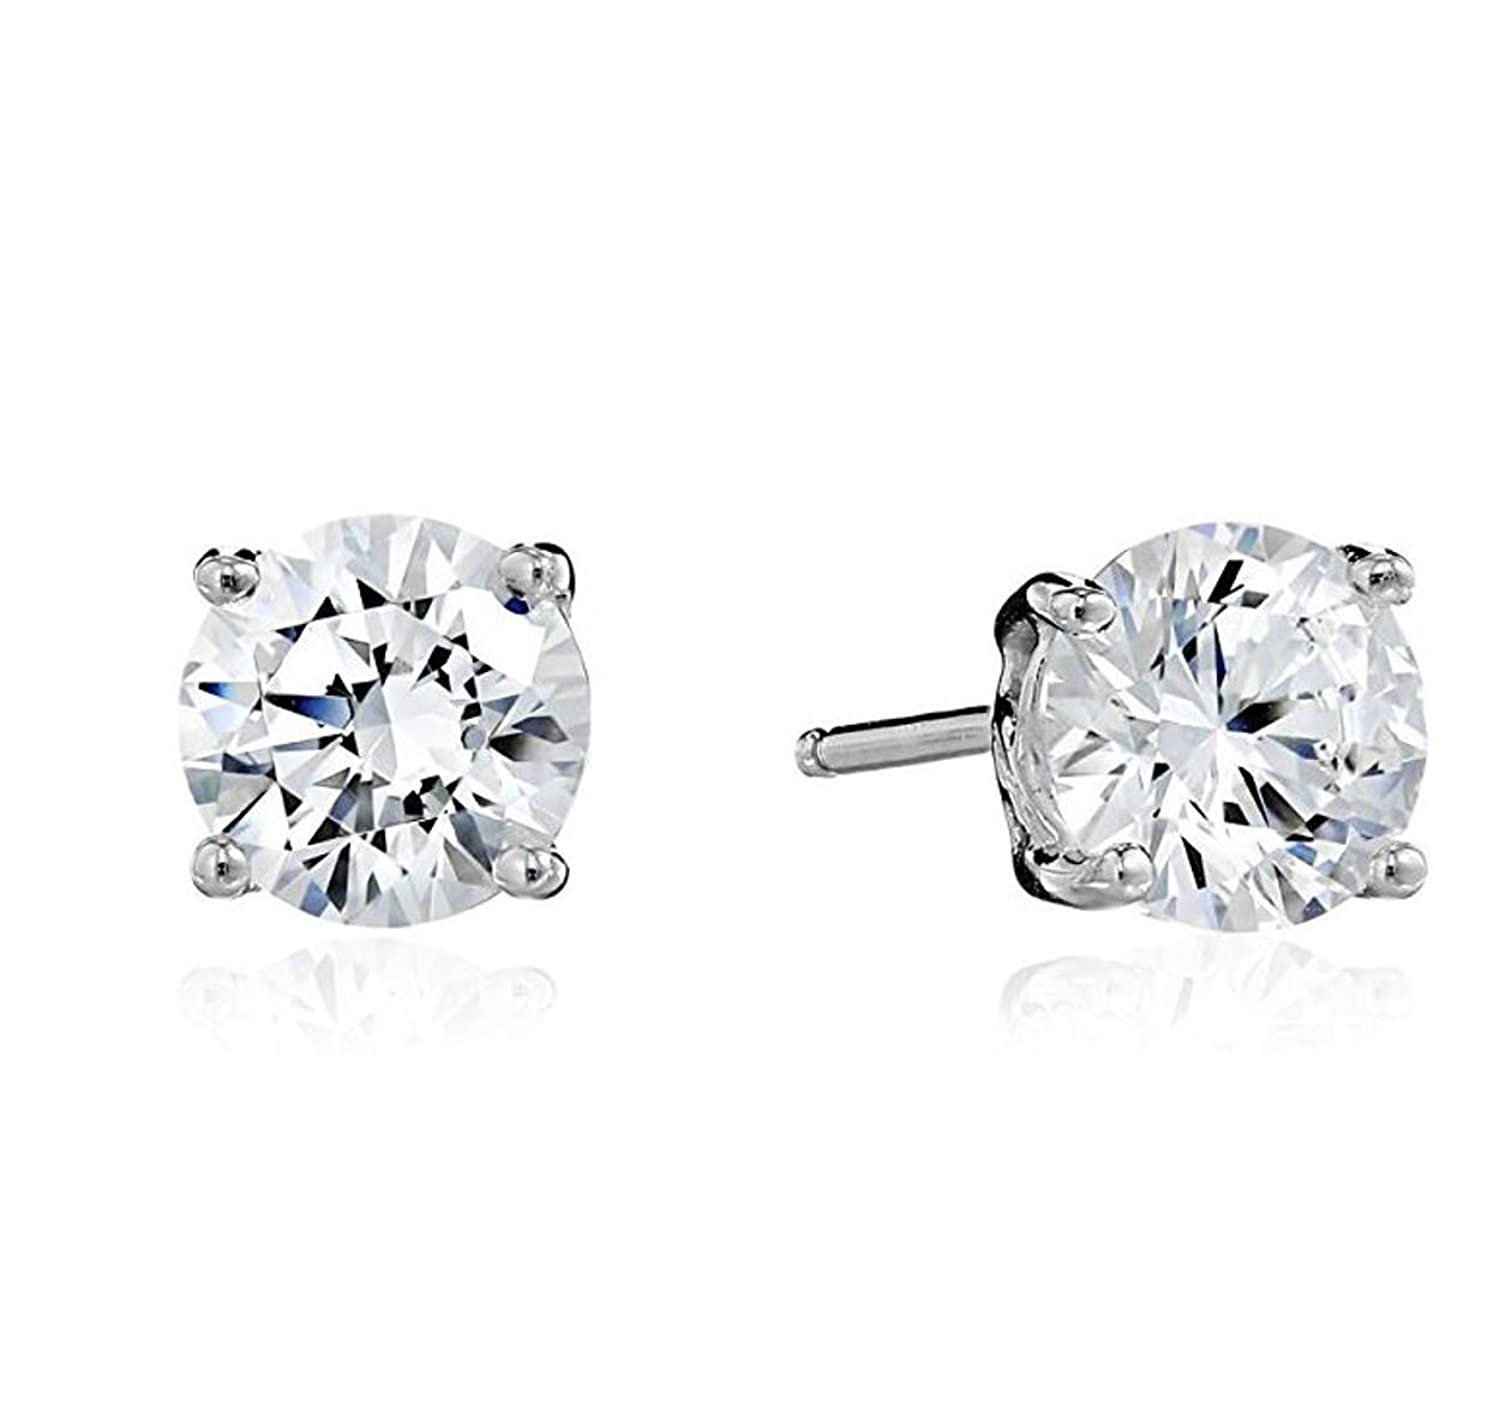 Amazoncom Surgical Stainless Steel Studs Earrings Little Girl